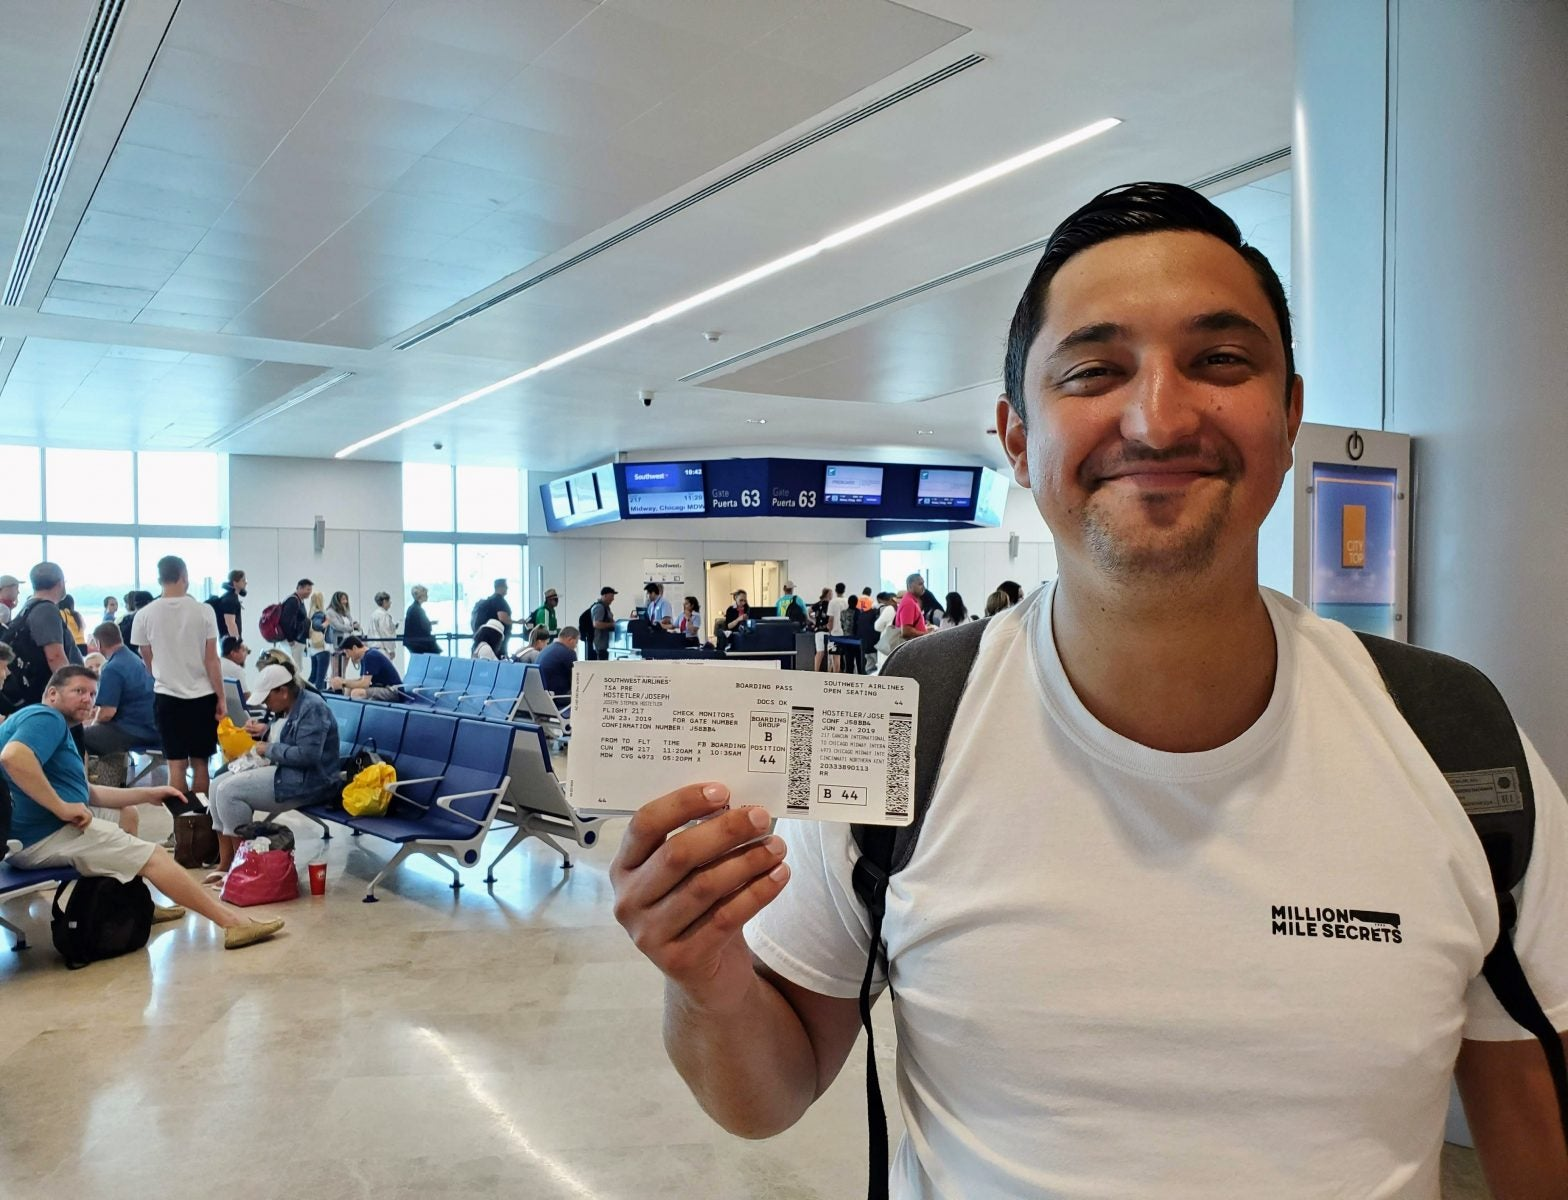 My First Time Using the Southwest Companion Pass Saved $440 — Here Are 3 Ways I'll Use It to Save Thousands More